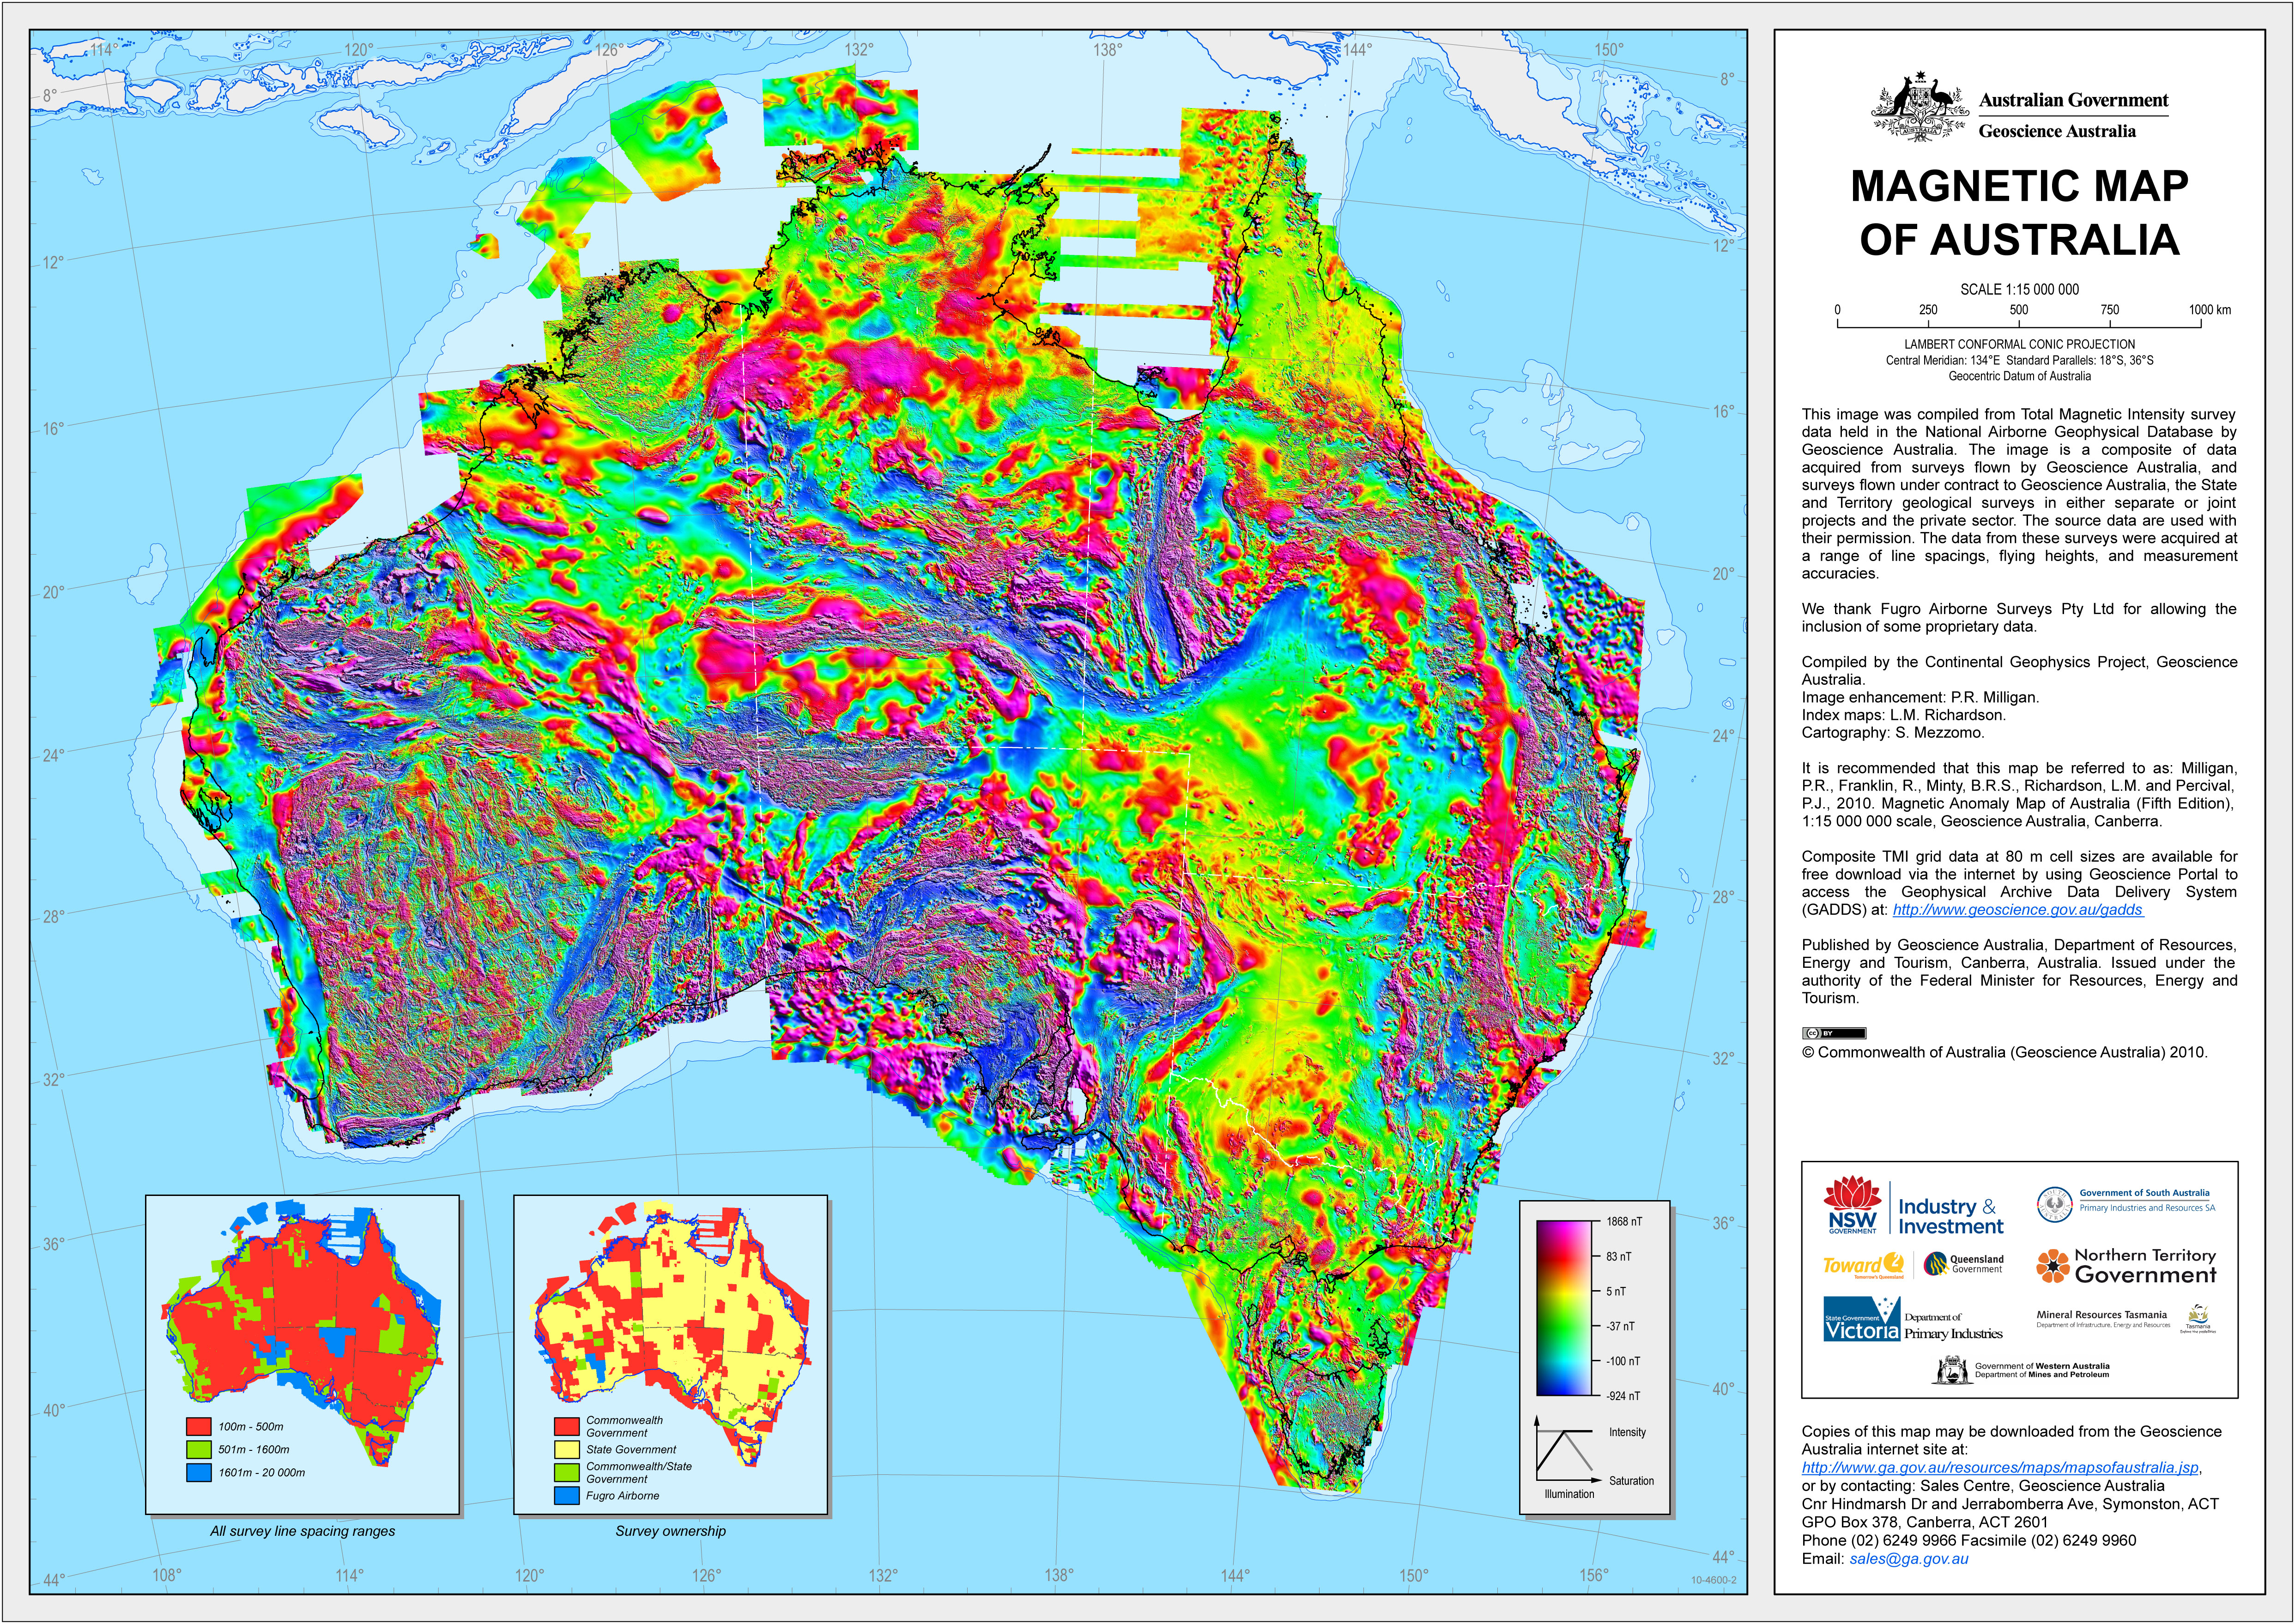 Magneticmapaustraliag magnetic map of australia view original image at full size gumiabroncs Choice Image